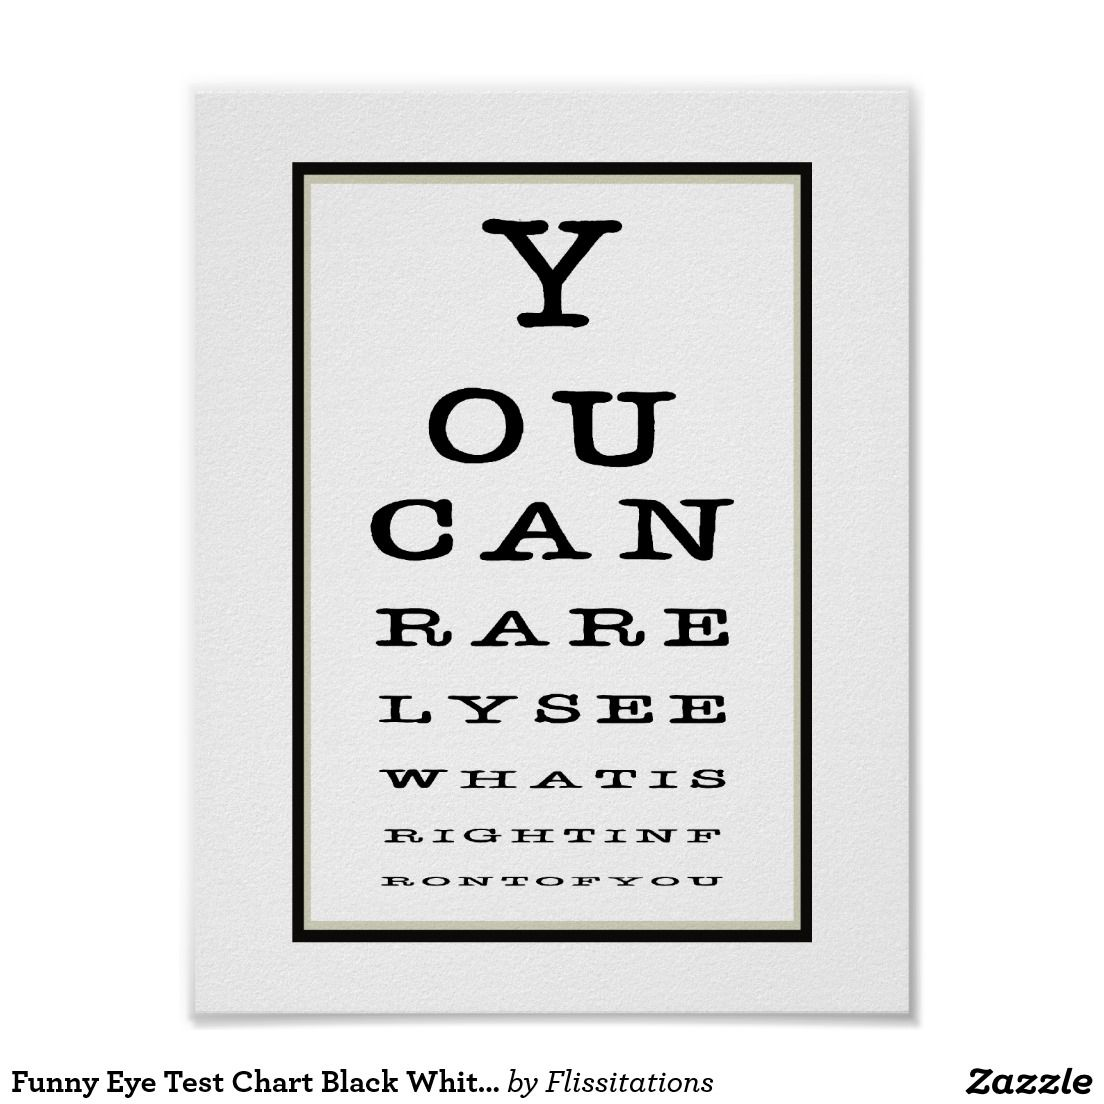 Funny eye test chart black white poster prints funny eye pictures funny eye test chart black white poster prints geenschuldenfo Gallery